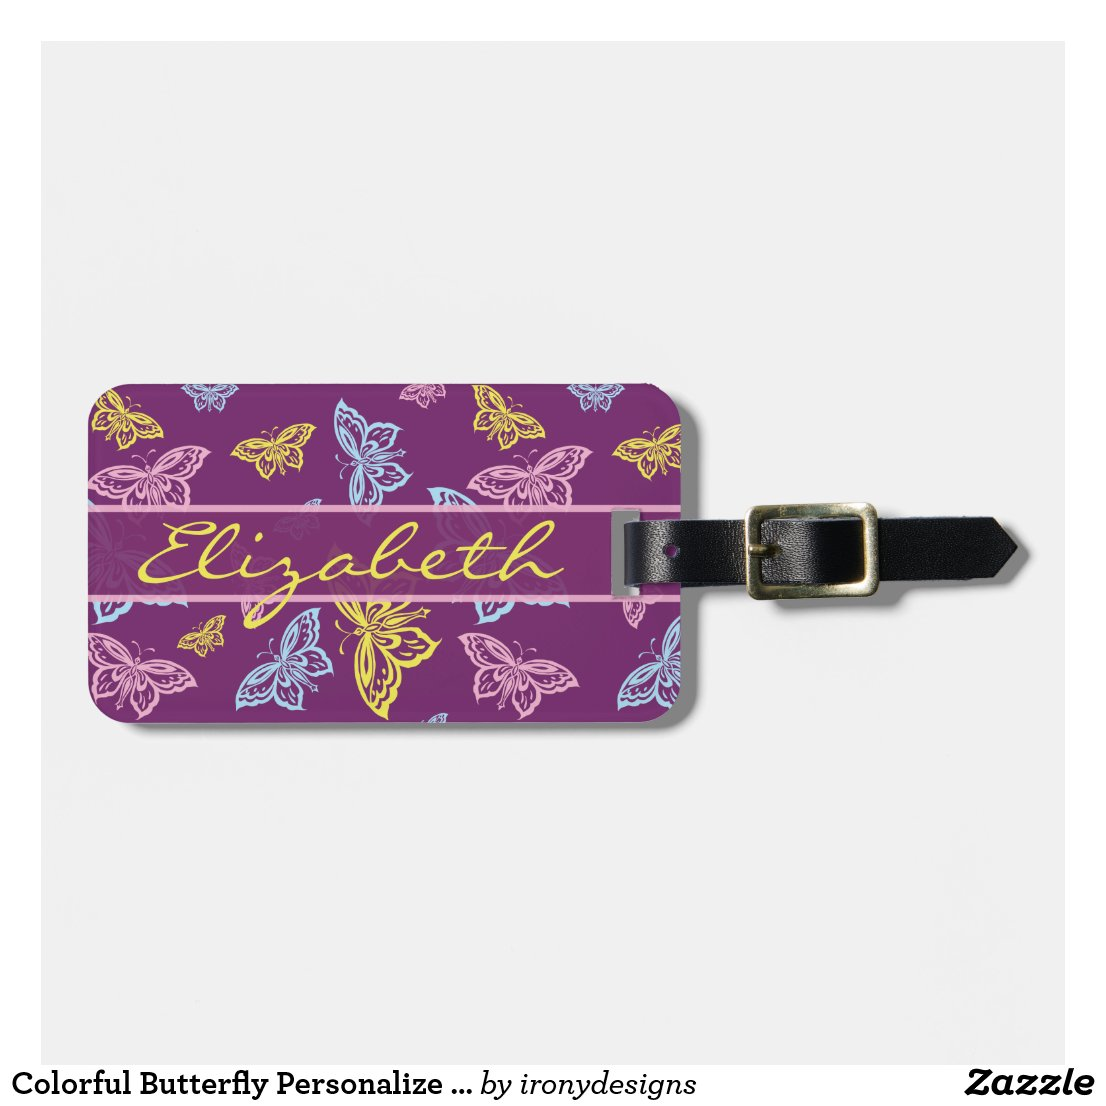 Colourful Butterfly Personalise Luggage Tag